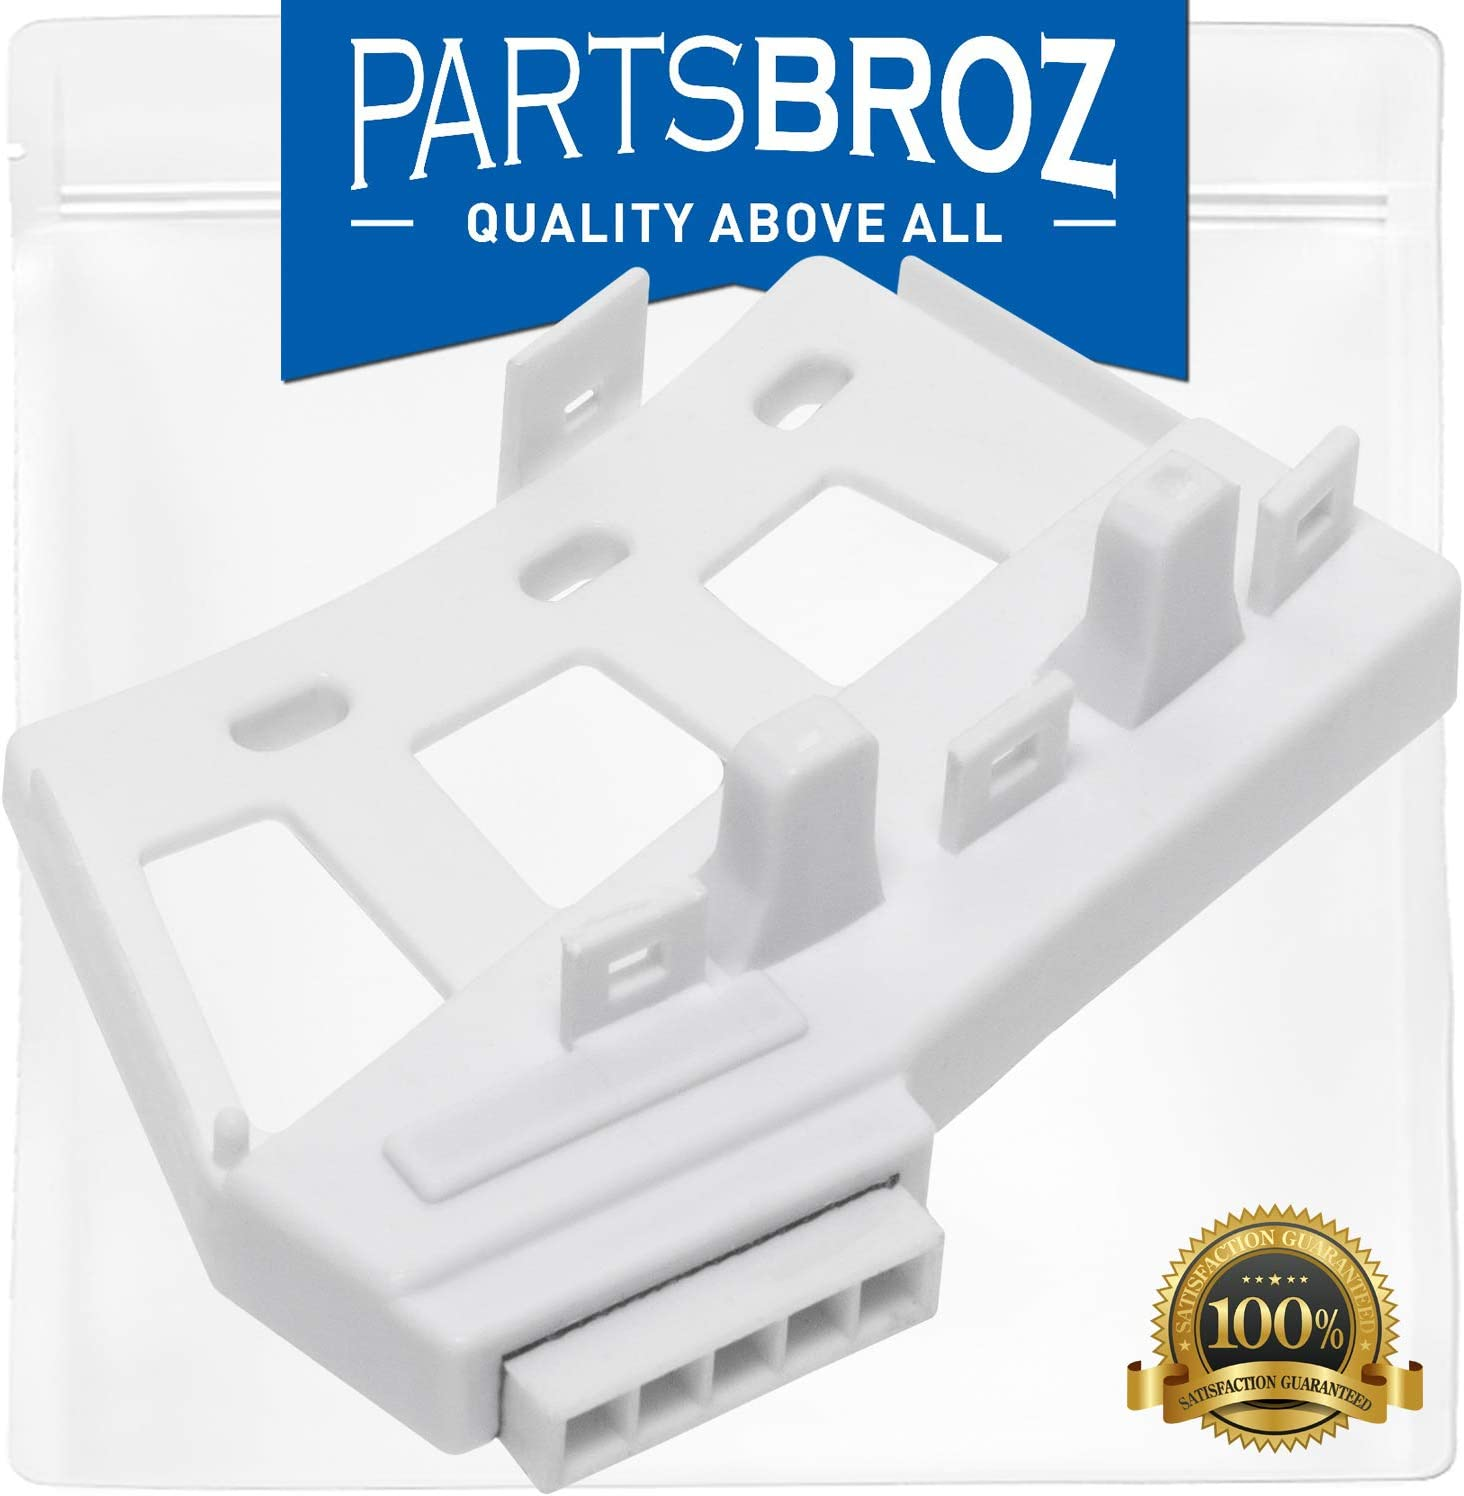 6501KW2001A Rotor Position Sensor for LG Washers and Washer Dryer Combos by PartsBroz - Replaces Part Numbers 1268237, AP4457567, PS3529185